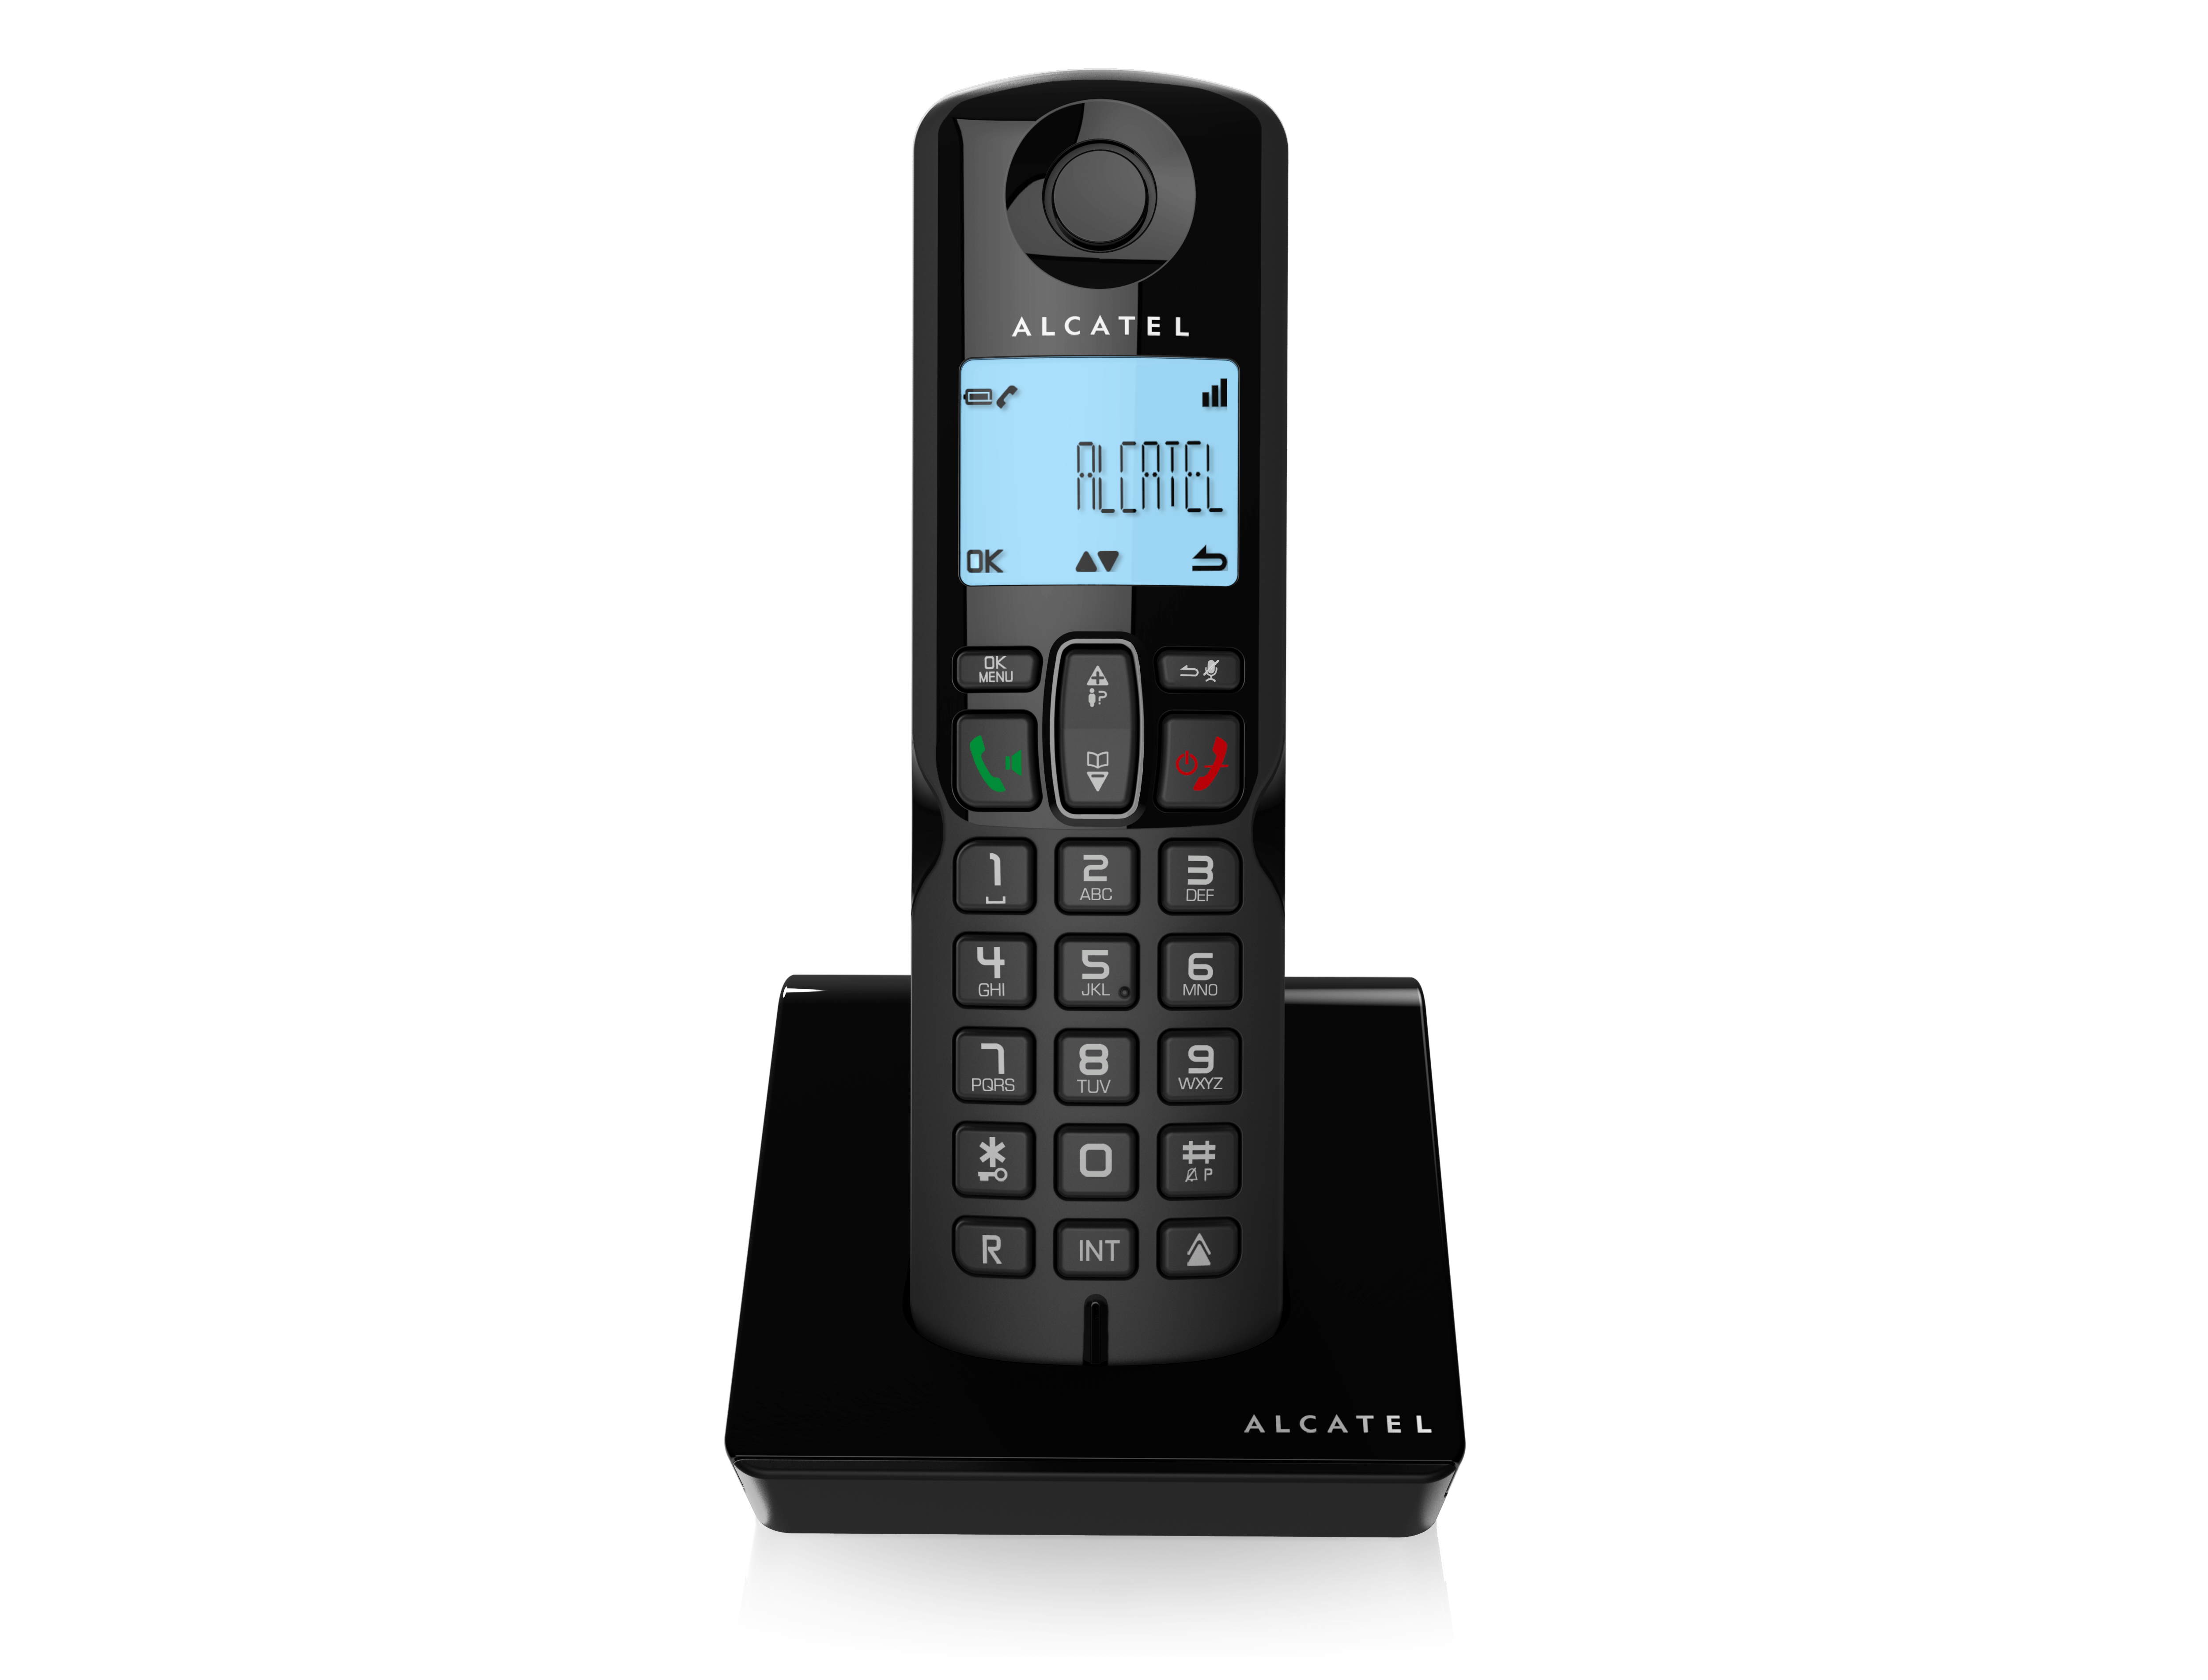 Telephone clipart cordless telephone. Alcatel s and voice